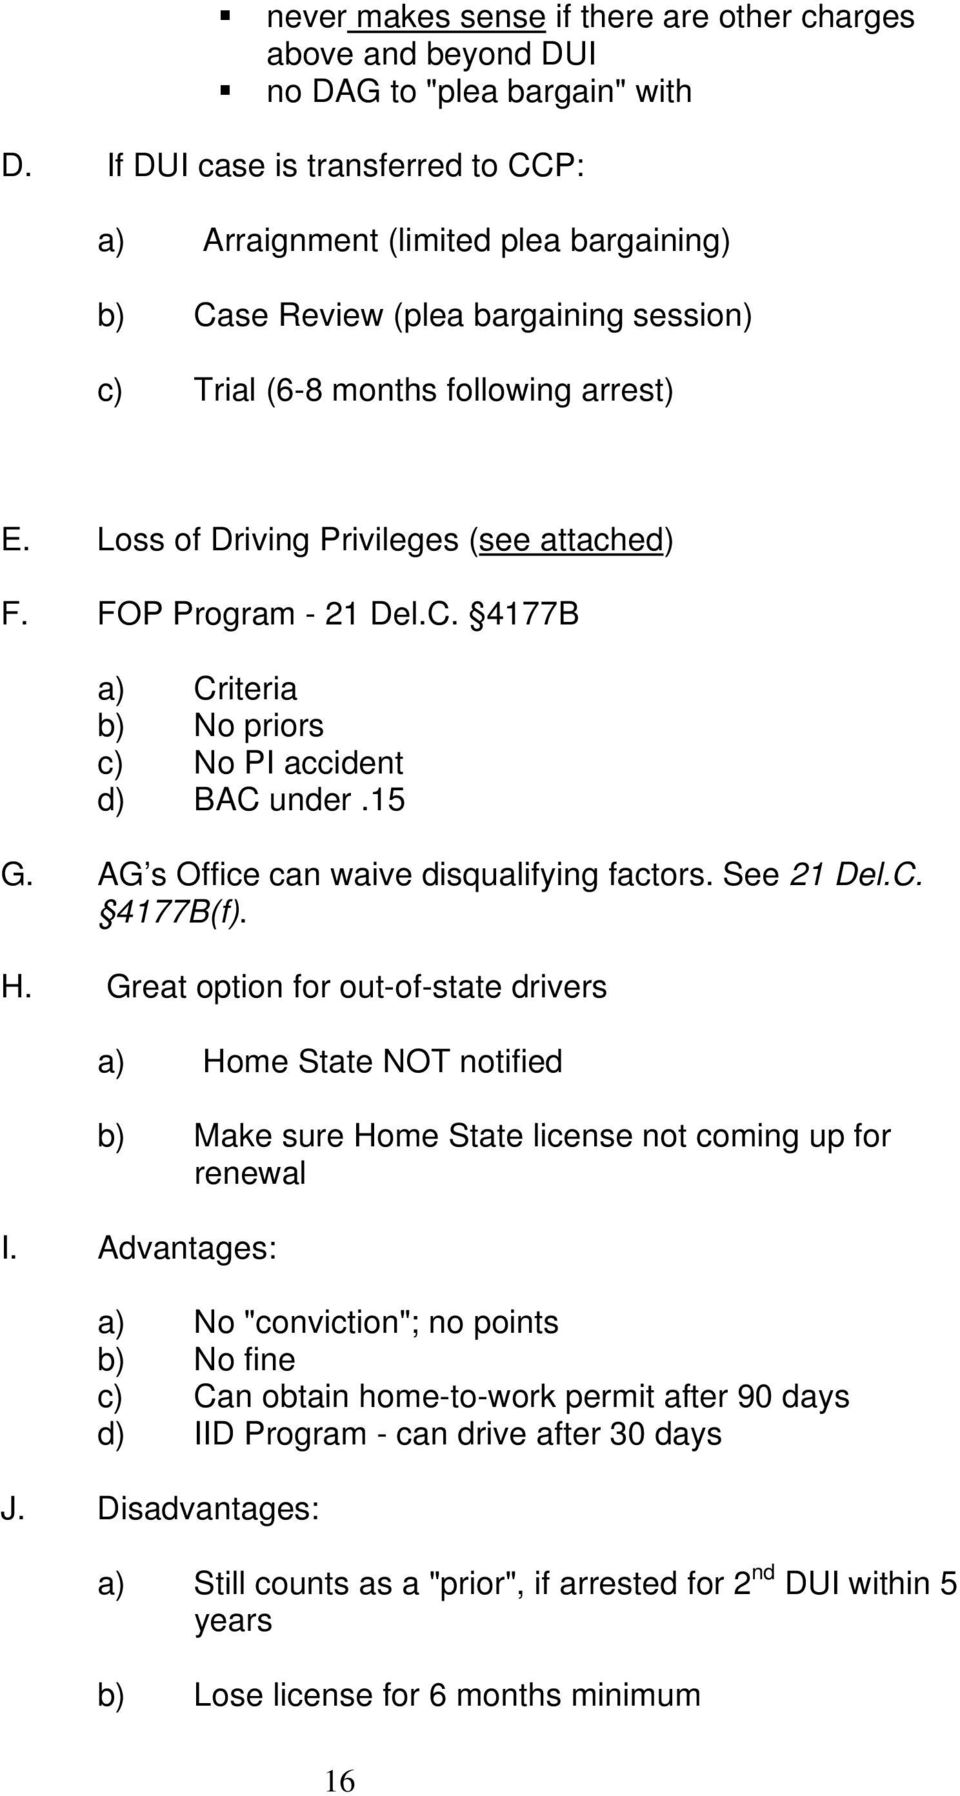 Loss of Driving Privileges (see attached) F. FOP Program - 21 Del.C. 4177B a) Criteria b) No priors c) No PI accident d) BAC under.15 G. AG s Office can waive disqualifying factors. See 21 Del.C. 4177B(f).